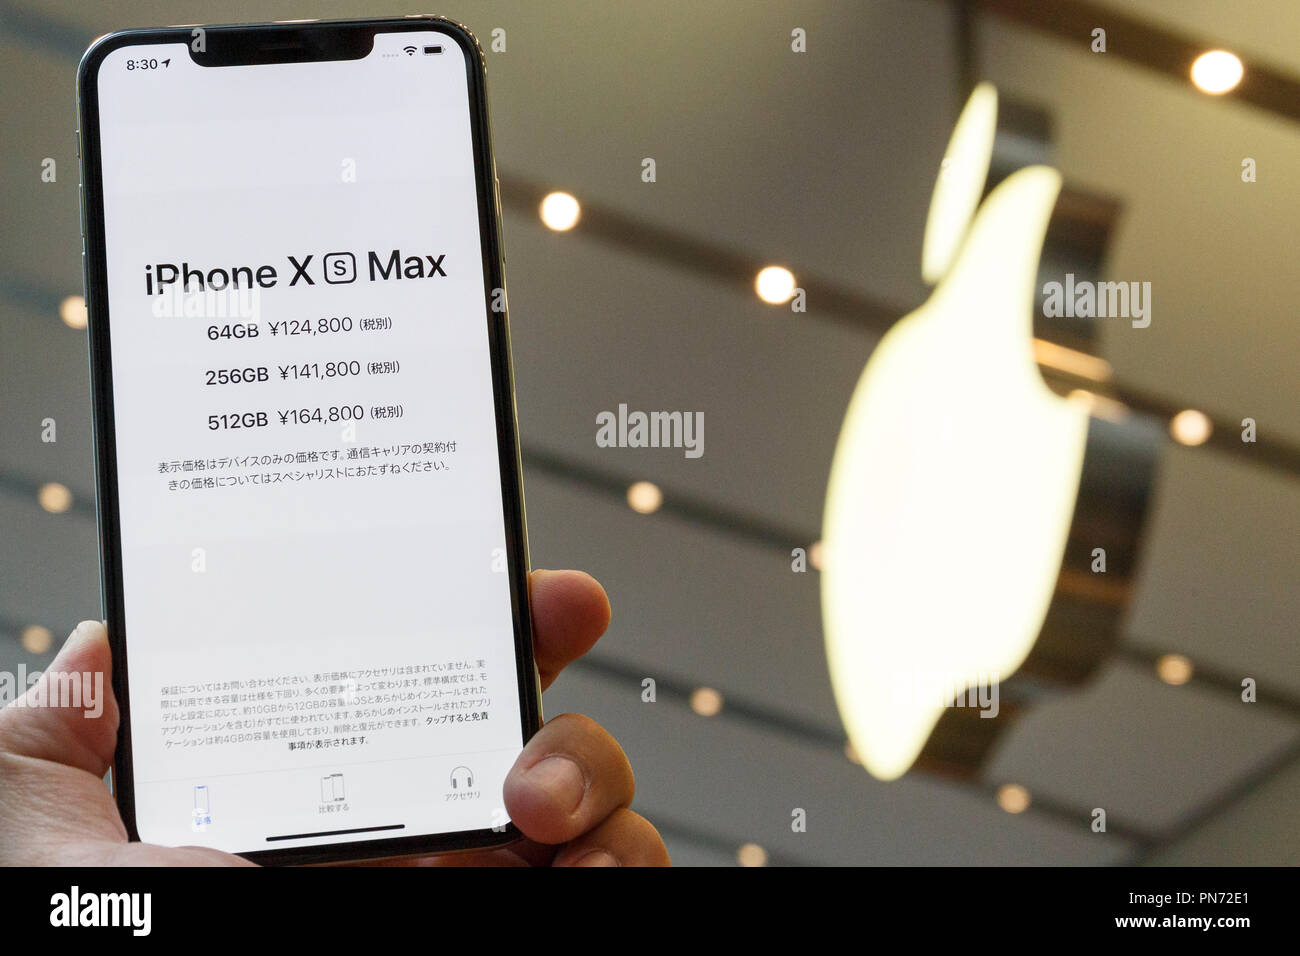 A sample of the new iPhone XS Max on display at the Apple Store in Omotesando on September 21, 2018, Tokyo, Japan. Apple fans lined up patiently in the early morning rain to get the new iPhone models (XS and XS Max) and the new iWatch (Series 4). The new iPhone XS costs JPY 112,800 for the 64 GB model, the iPhone XS Max costs JPY 124,800 JPY for the 64 GB model, and iWatch Series 4 costs JPY 45,800. Credit: Rodrigo Reyes Marin/AFLO/Alamy Live News Stock Photo